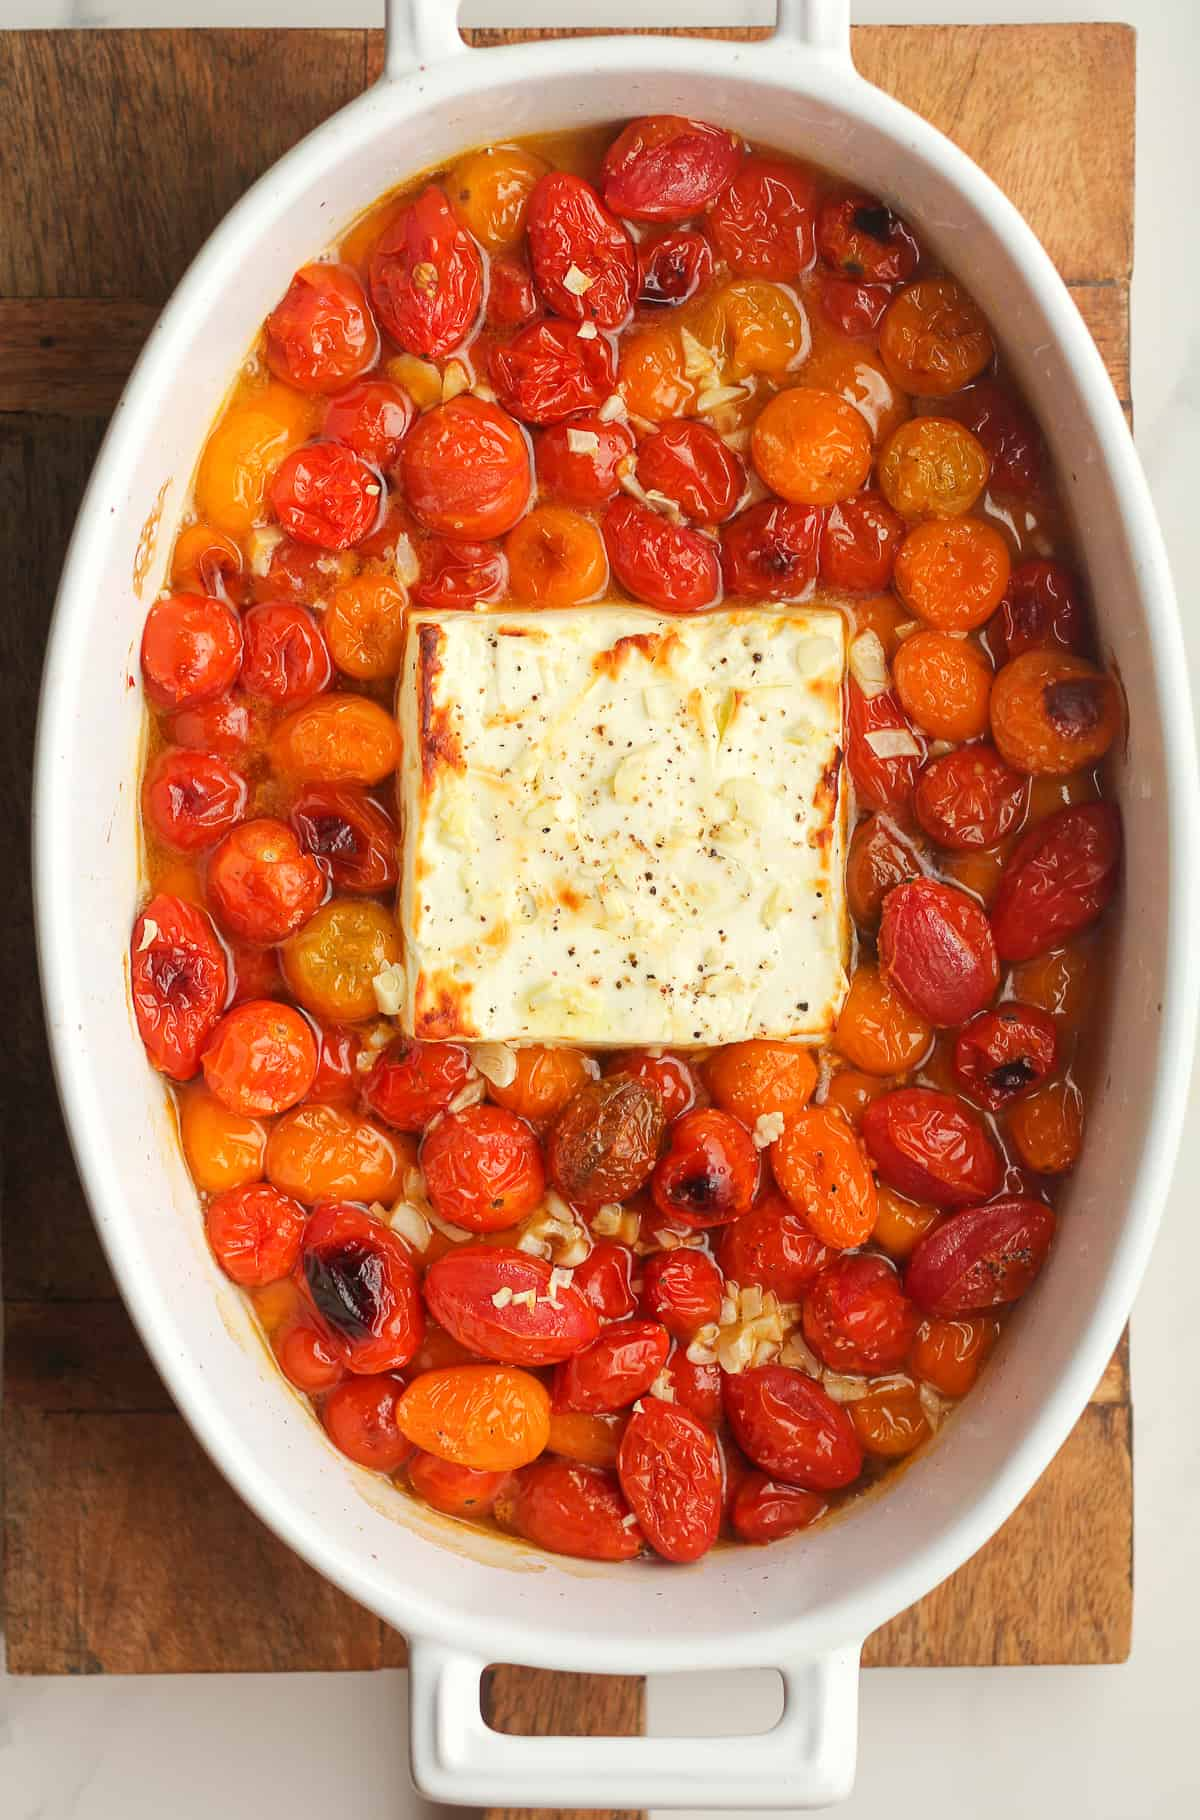 The dish of the baked tomatoes and feta cheese.